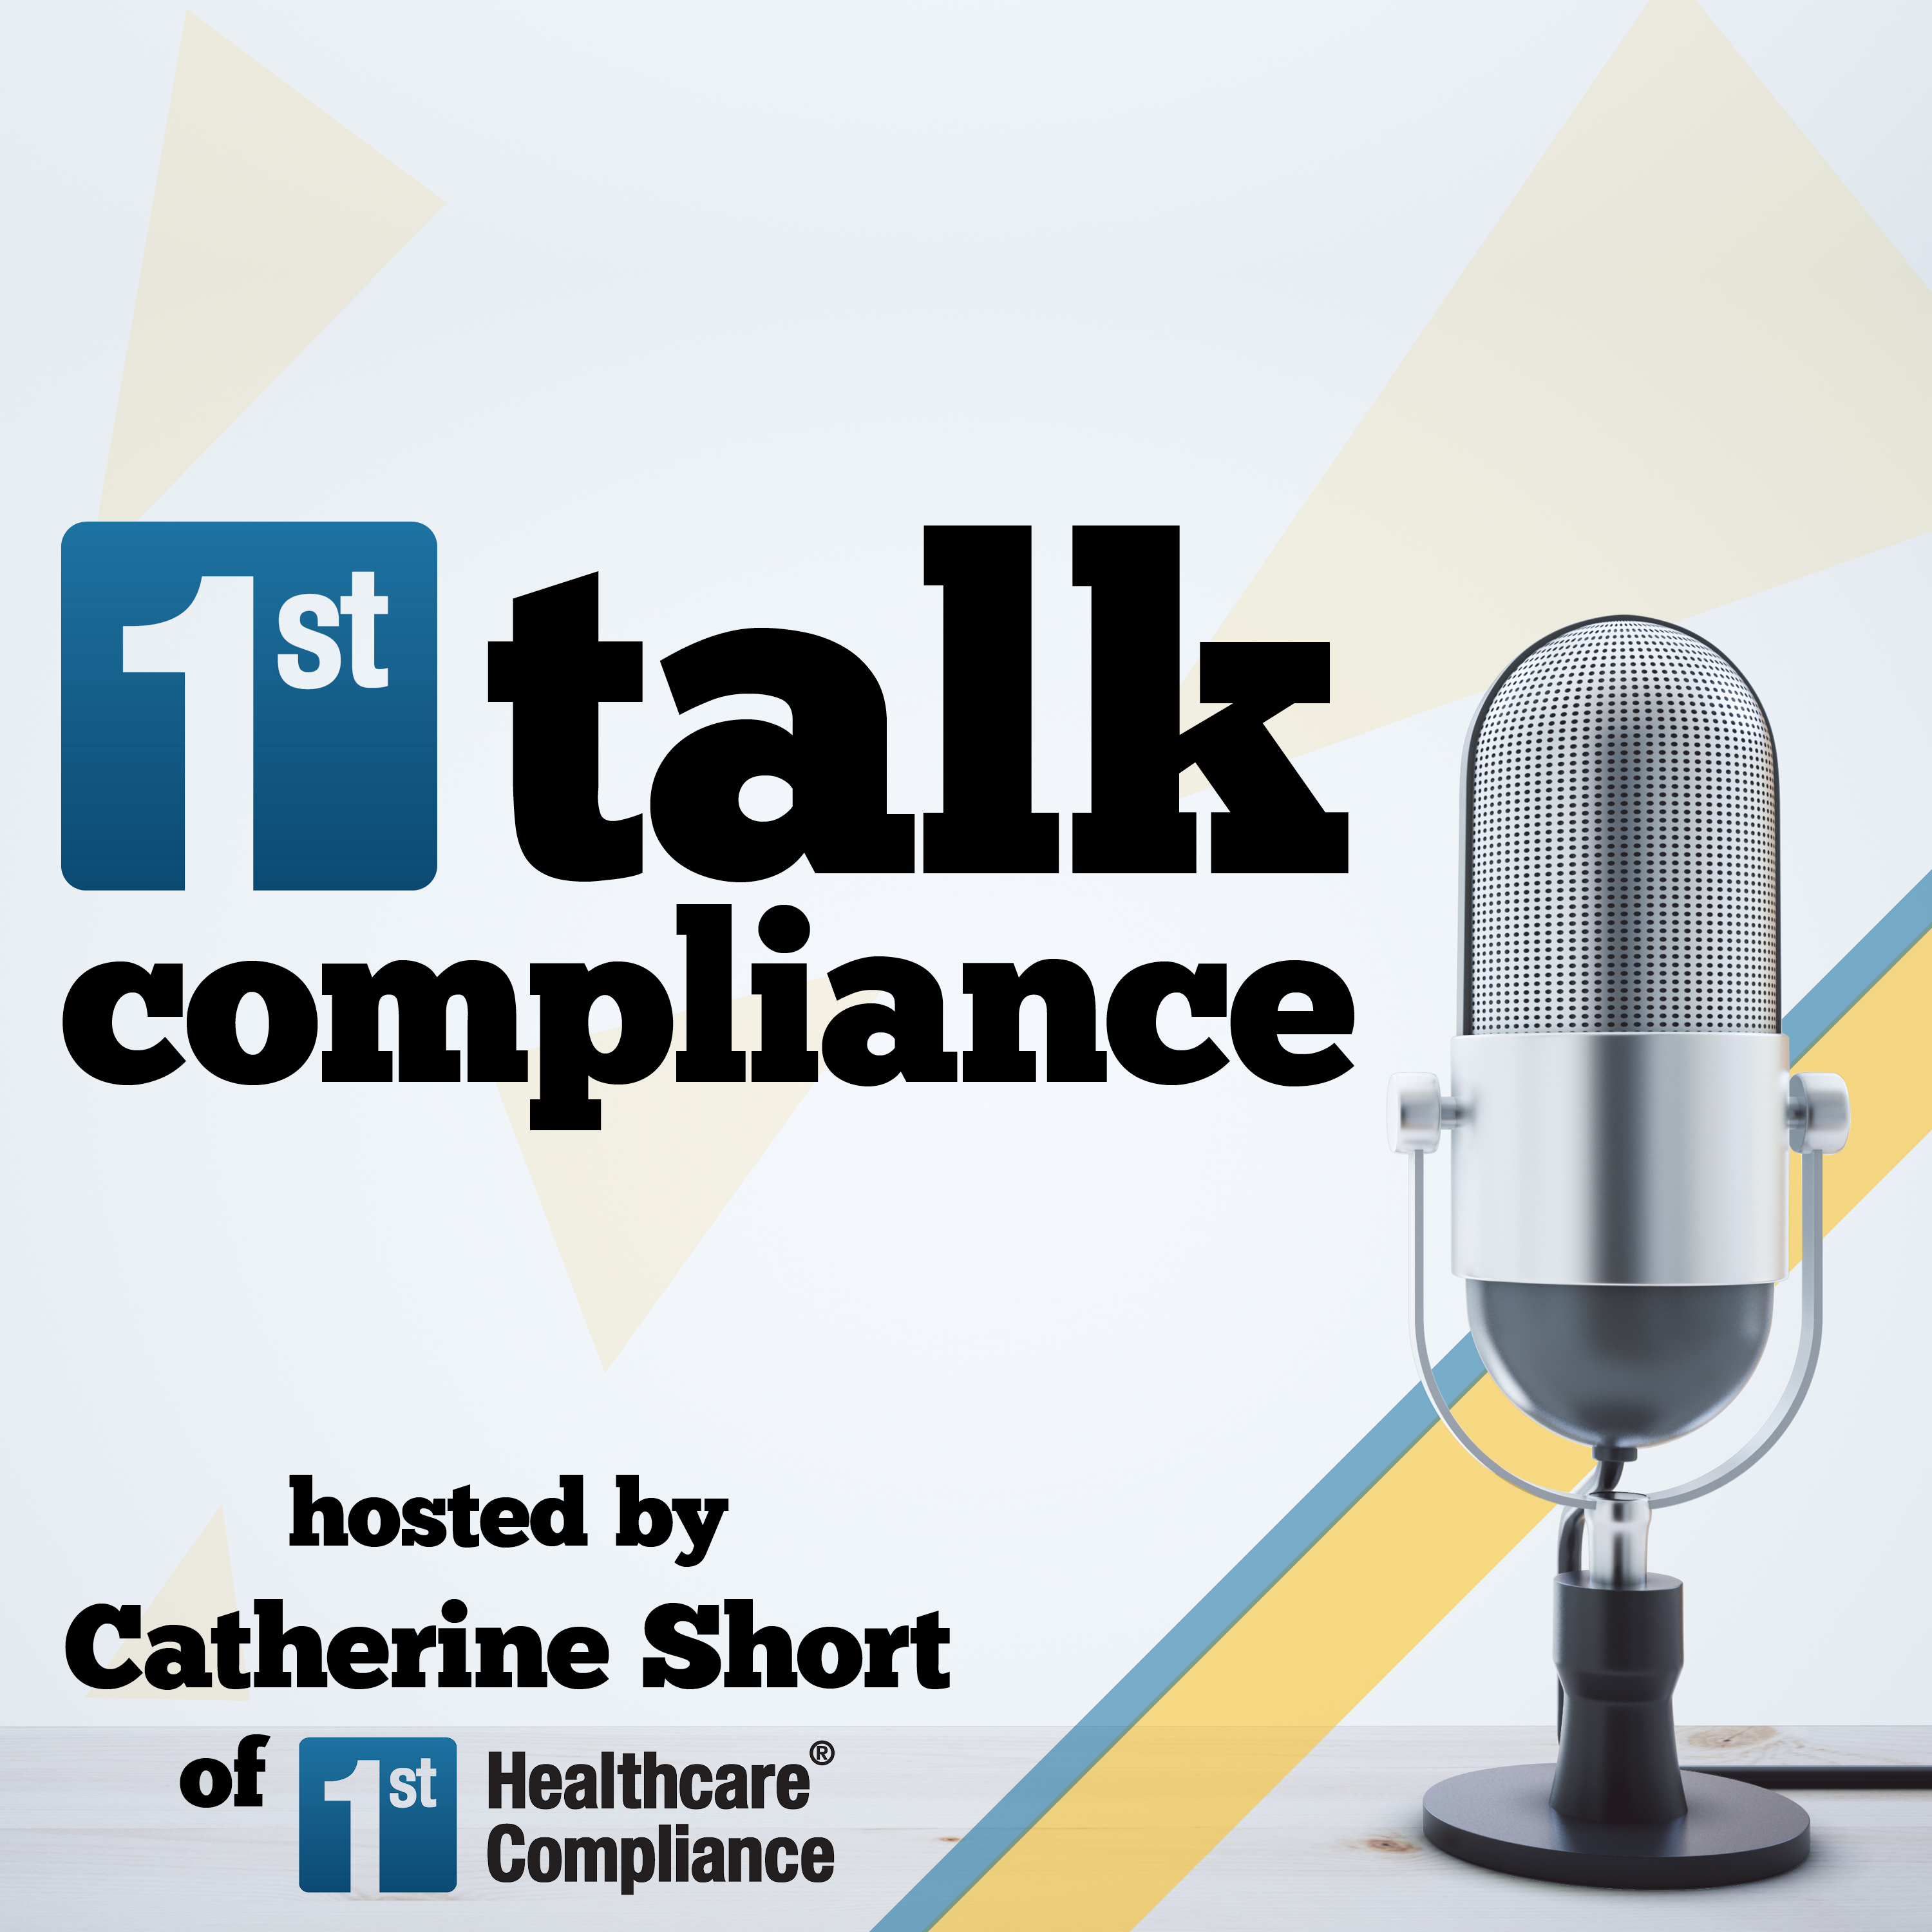 1st Talk Compliance